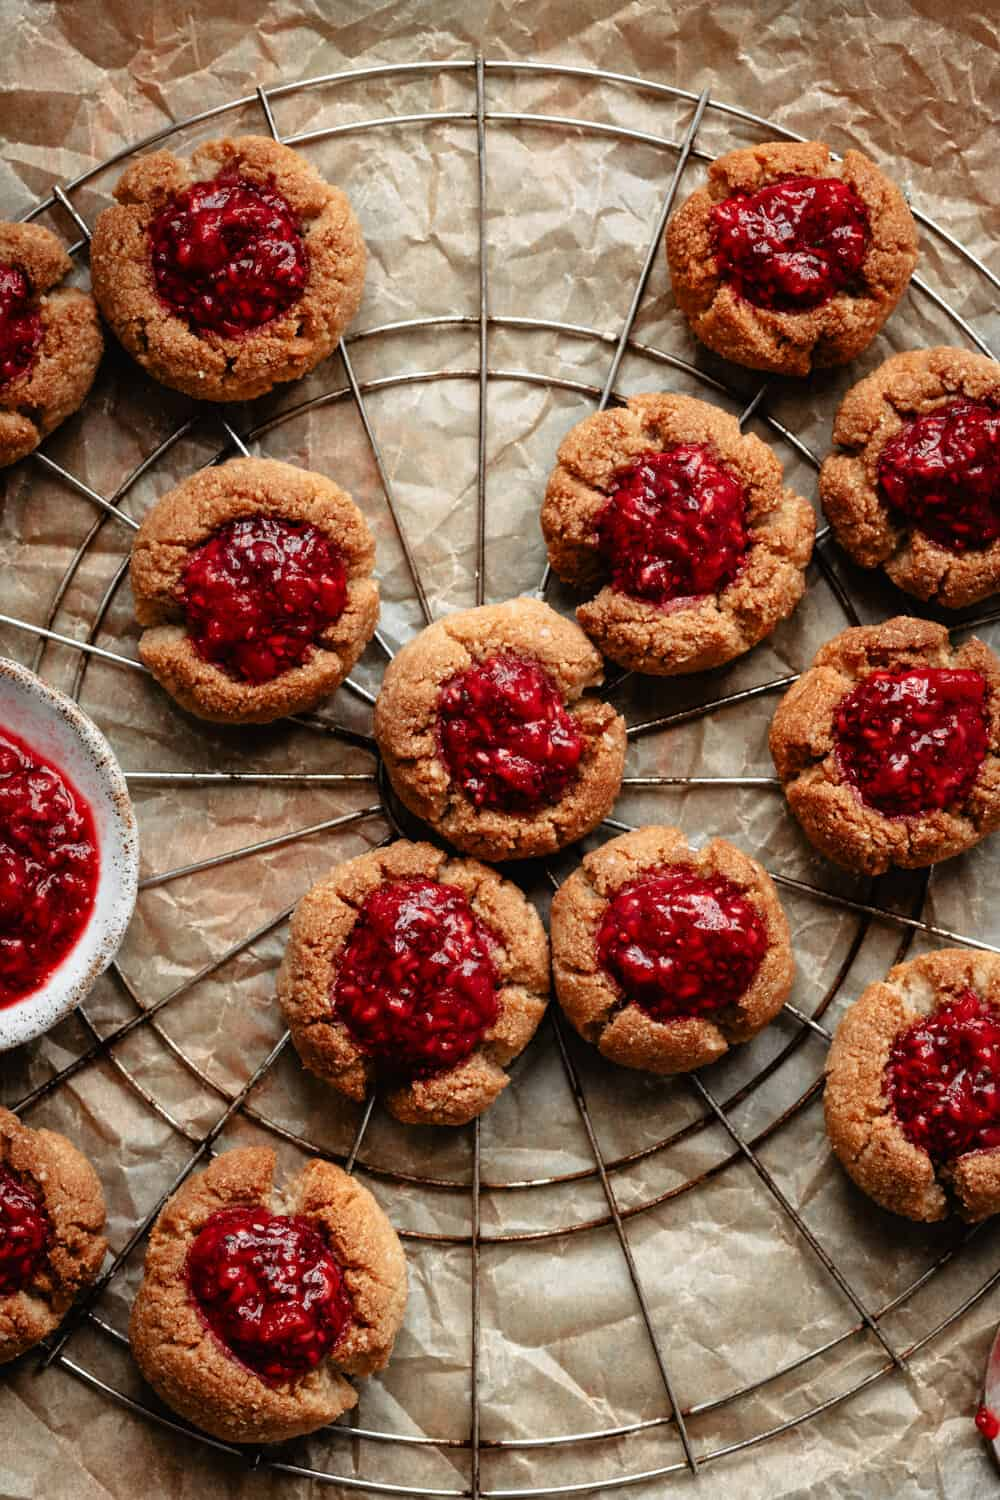 "PALEO RASPBERRY CHIA THUMBPRINT COOKIES - INGREDIENTSFOR THE COOKIES:2 1/2 cups almond flour1/2 cup melted coconut oil3 tb maple syrup1/2 tsp cinnamonFOR THE RASPBERRY FILLING""1 pint fresh raspberries1 tb chia seeds1 tb maple syrup1/2 tsp melted coconut oil"